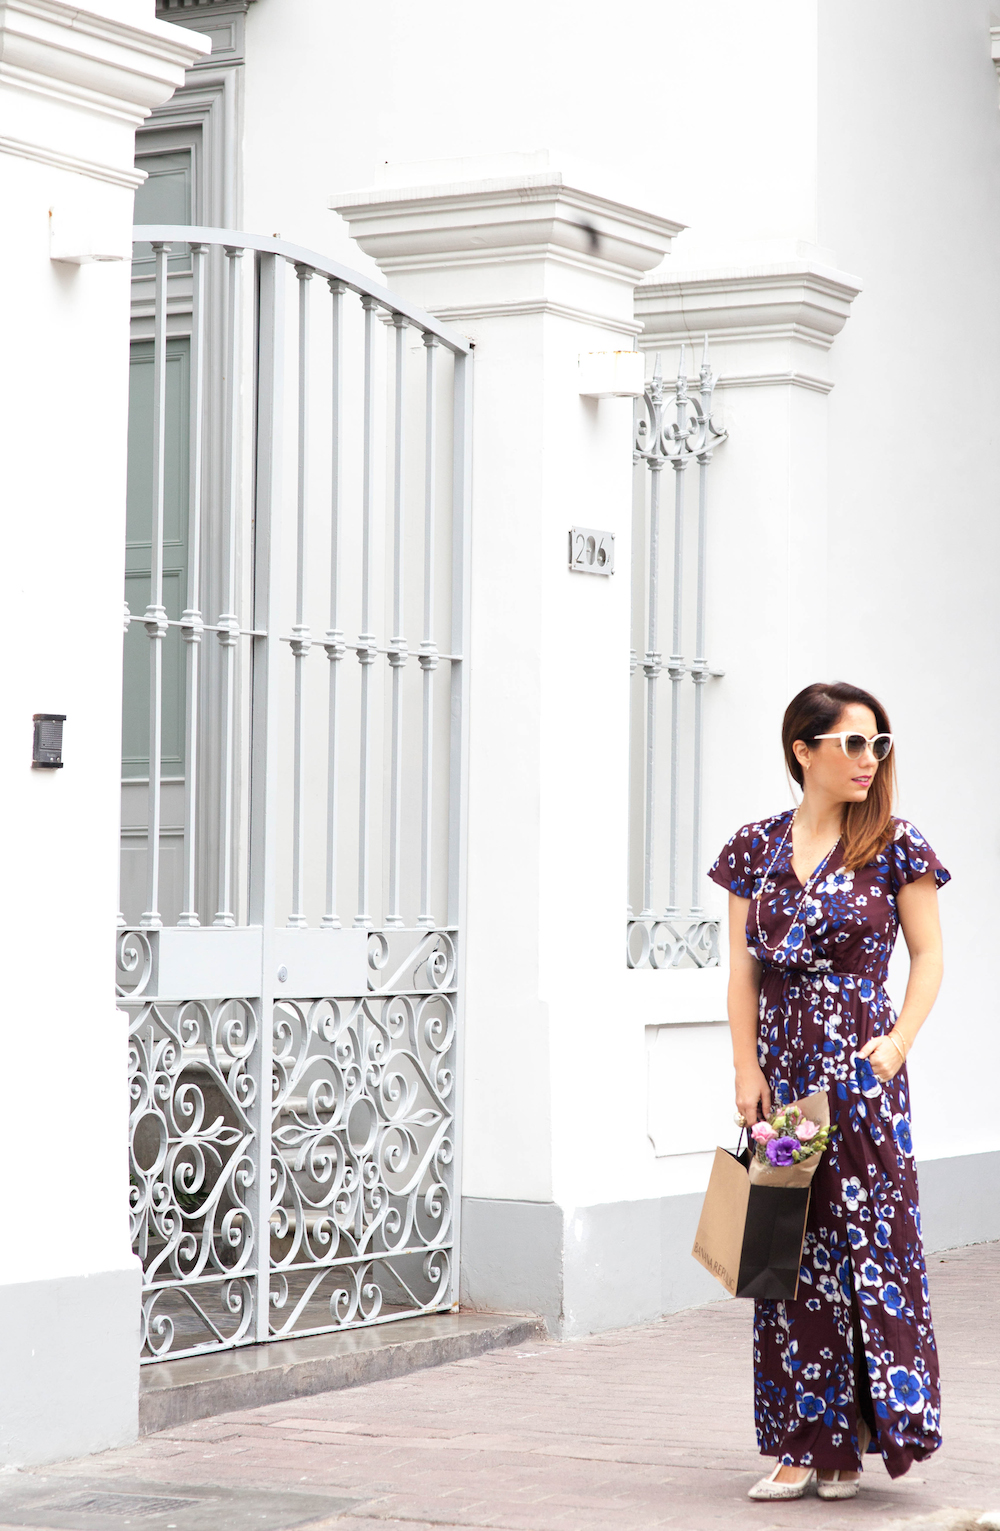 La vida de Serendipity - Banana Republic Maxi Floral Dress - Fendi Sunglasses -  2